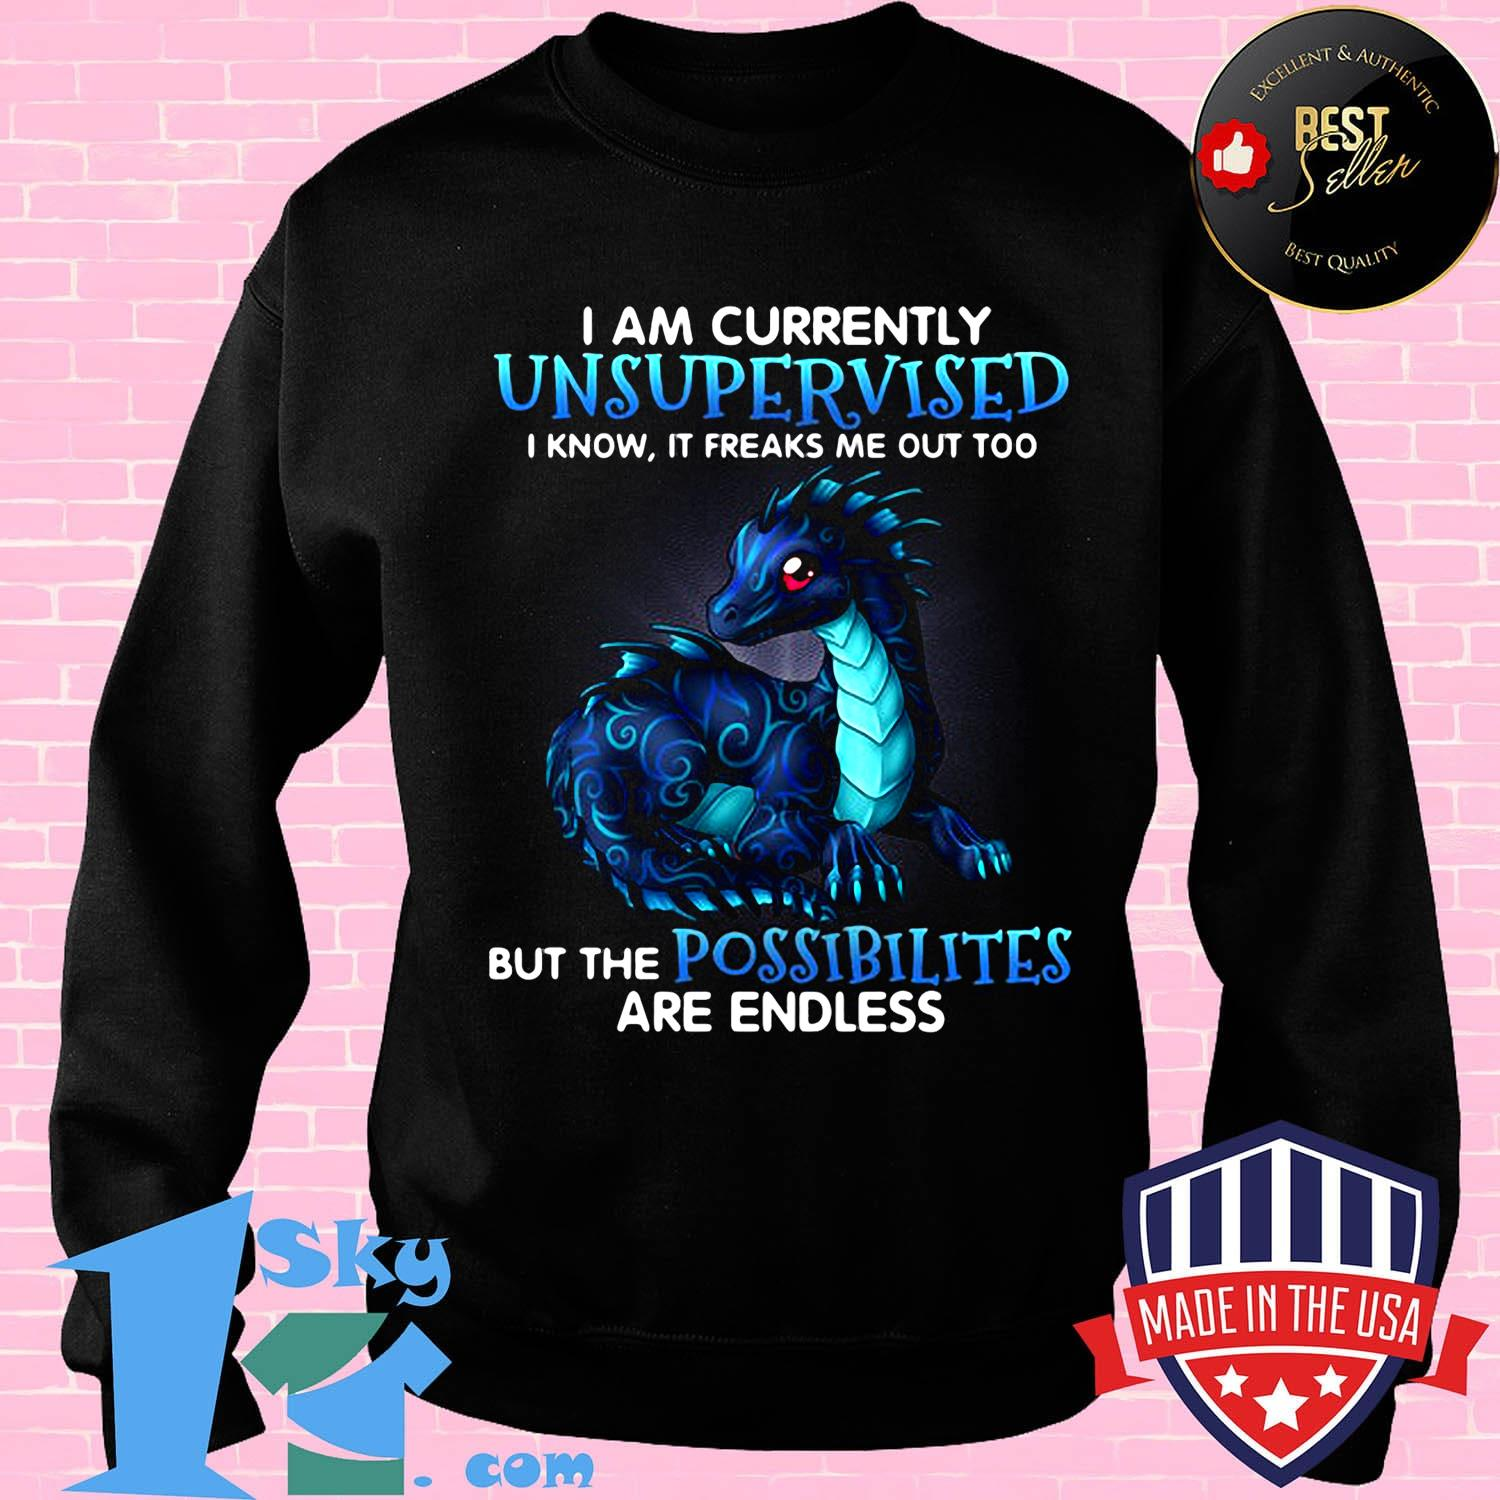 I Am Currently Unsupervised I Know If Freaks Me Out Too But Me Possibilities Dragon Shirt